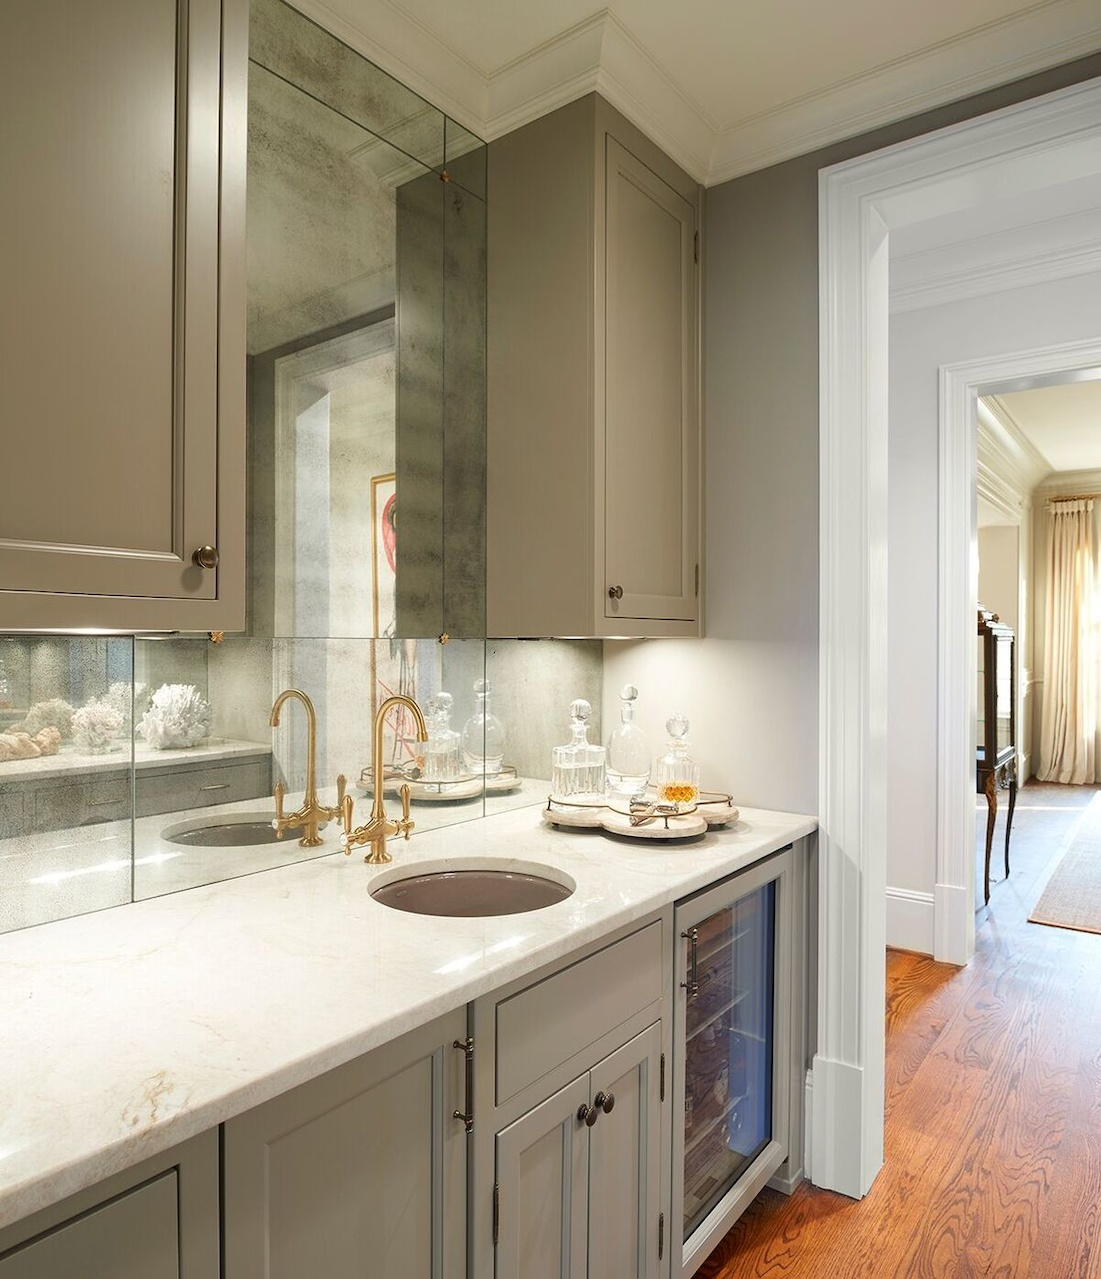 Antiqued-mirror walls line the butlers pantry, which has the convenience of a small sink for bar use.